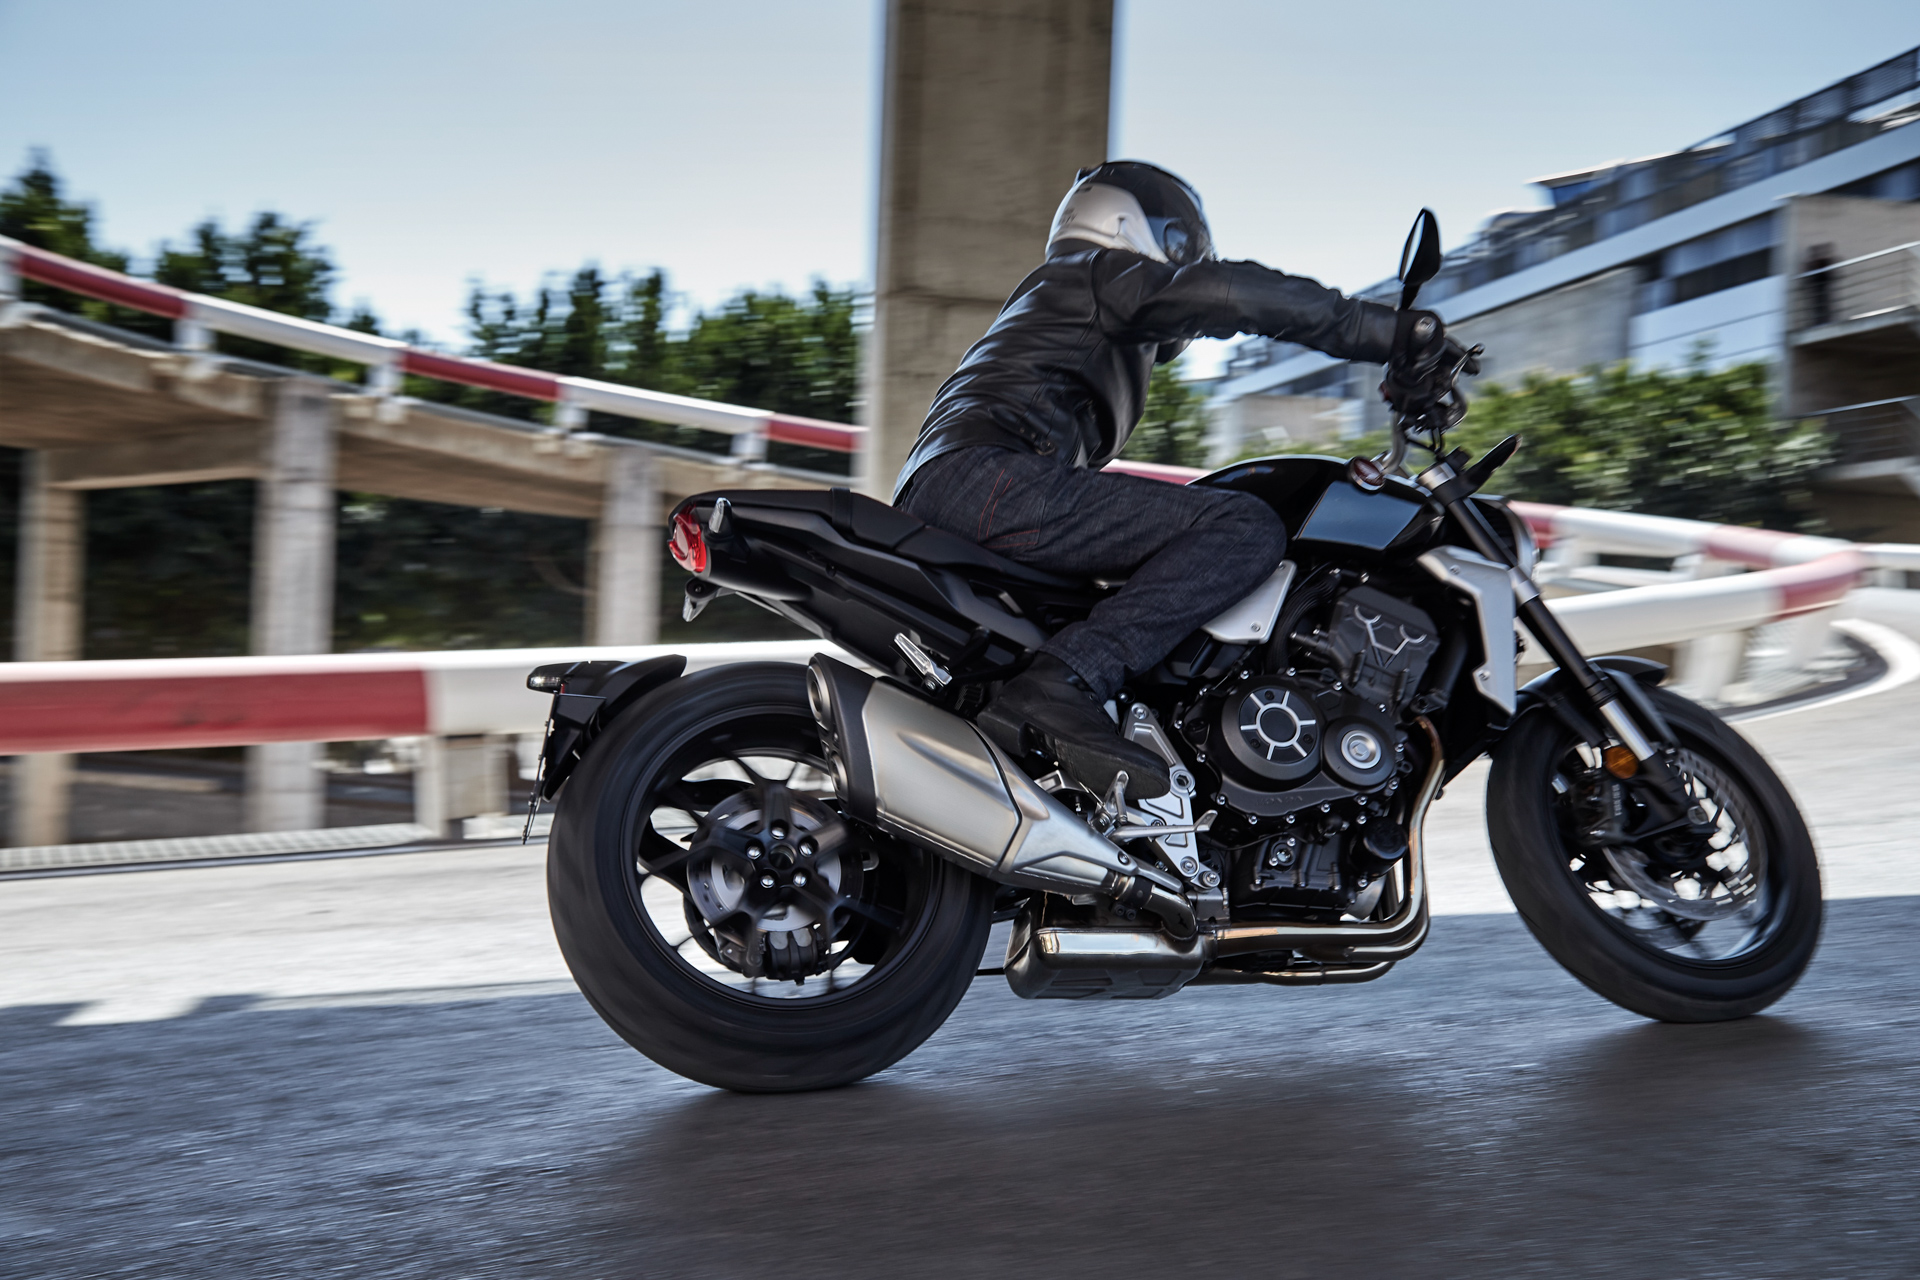 Honda Unveils The Neo Sports Cafe As The Cb1000r And We